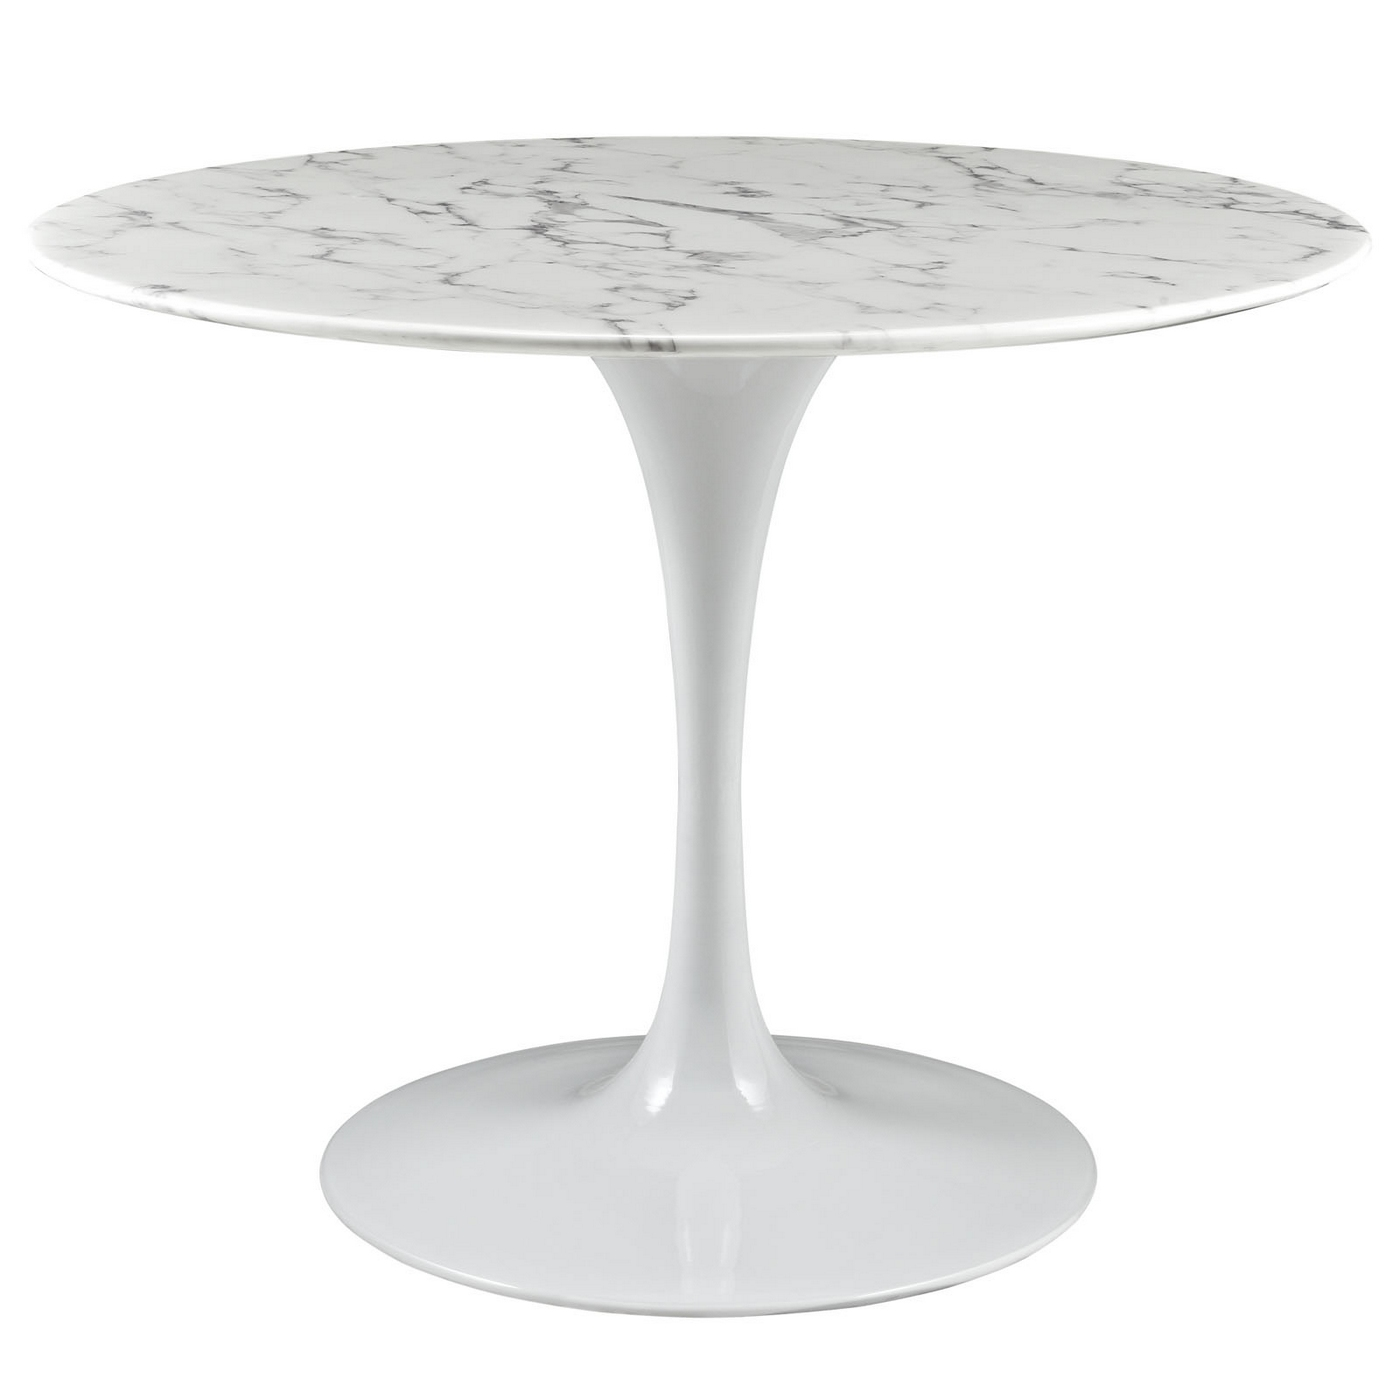 lippa 40 round faux marble dining table with lacquered finish white. Black Bedroom Furniture Sets. Home Design Ideas